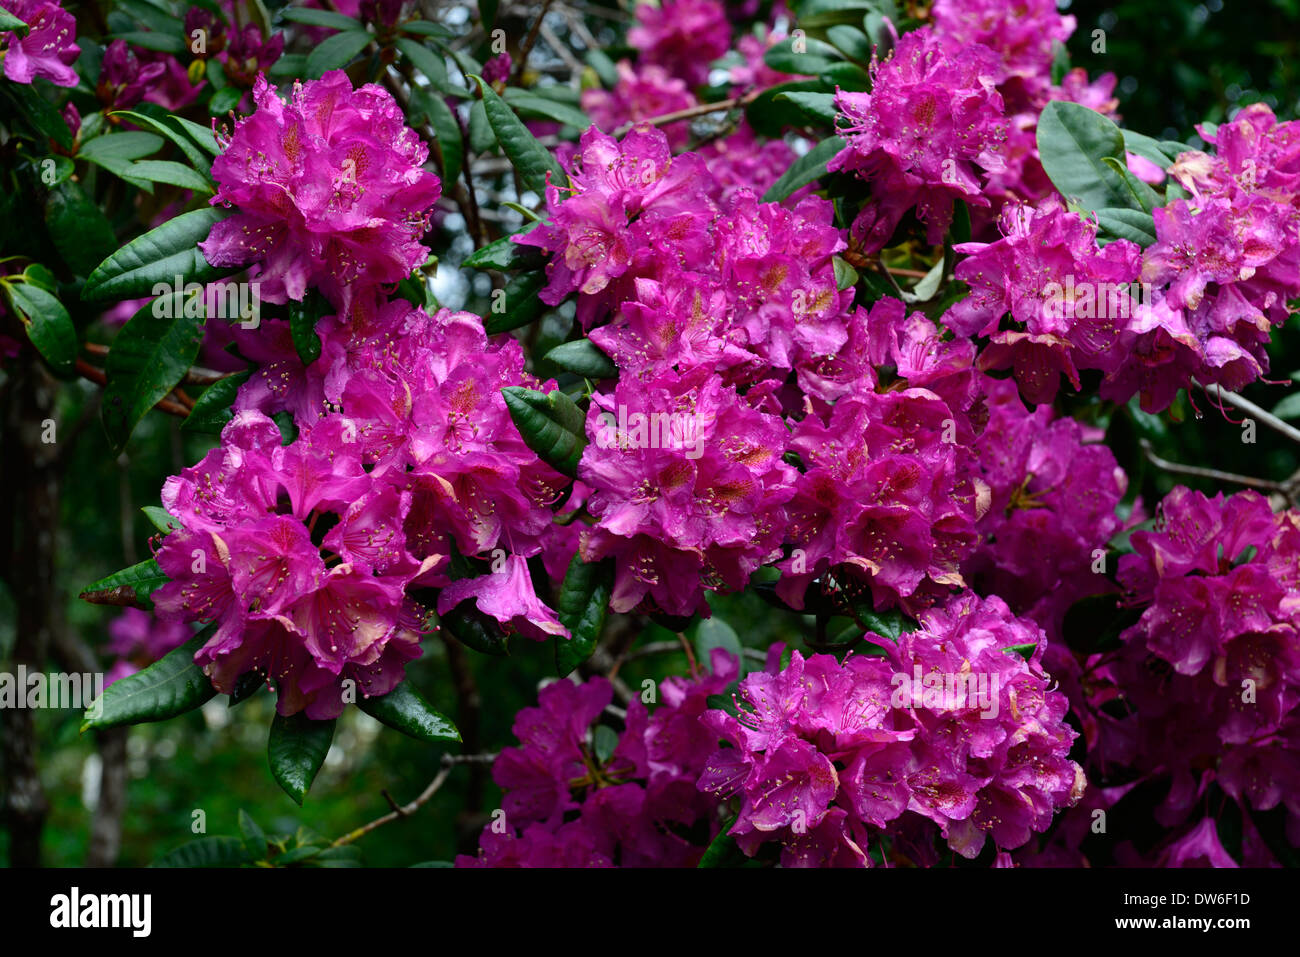 Rhododendron Royal Purple Flowers Flower Flowering Evergreen Green